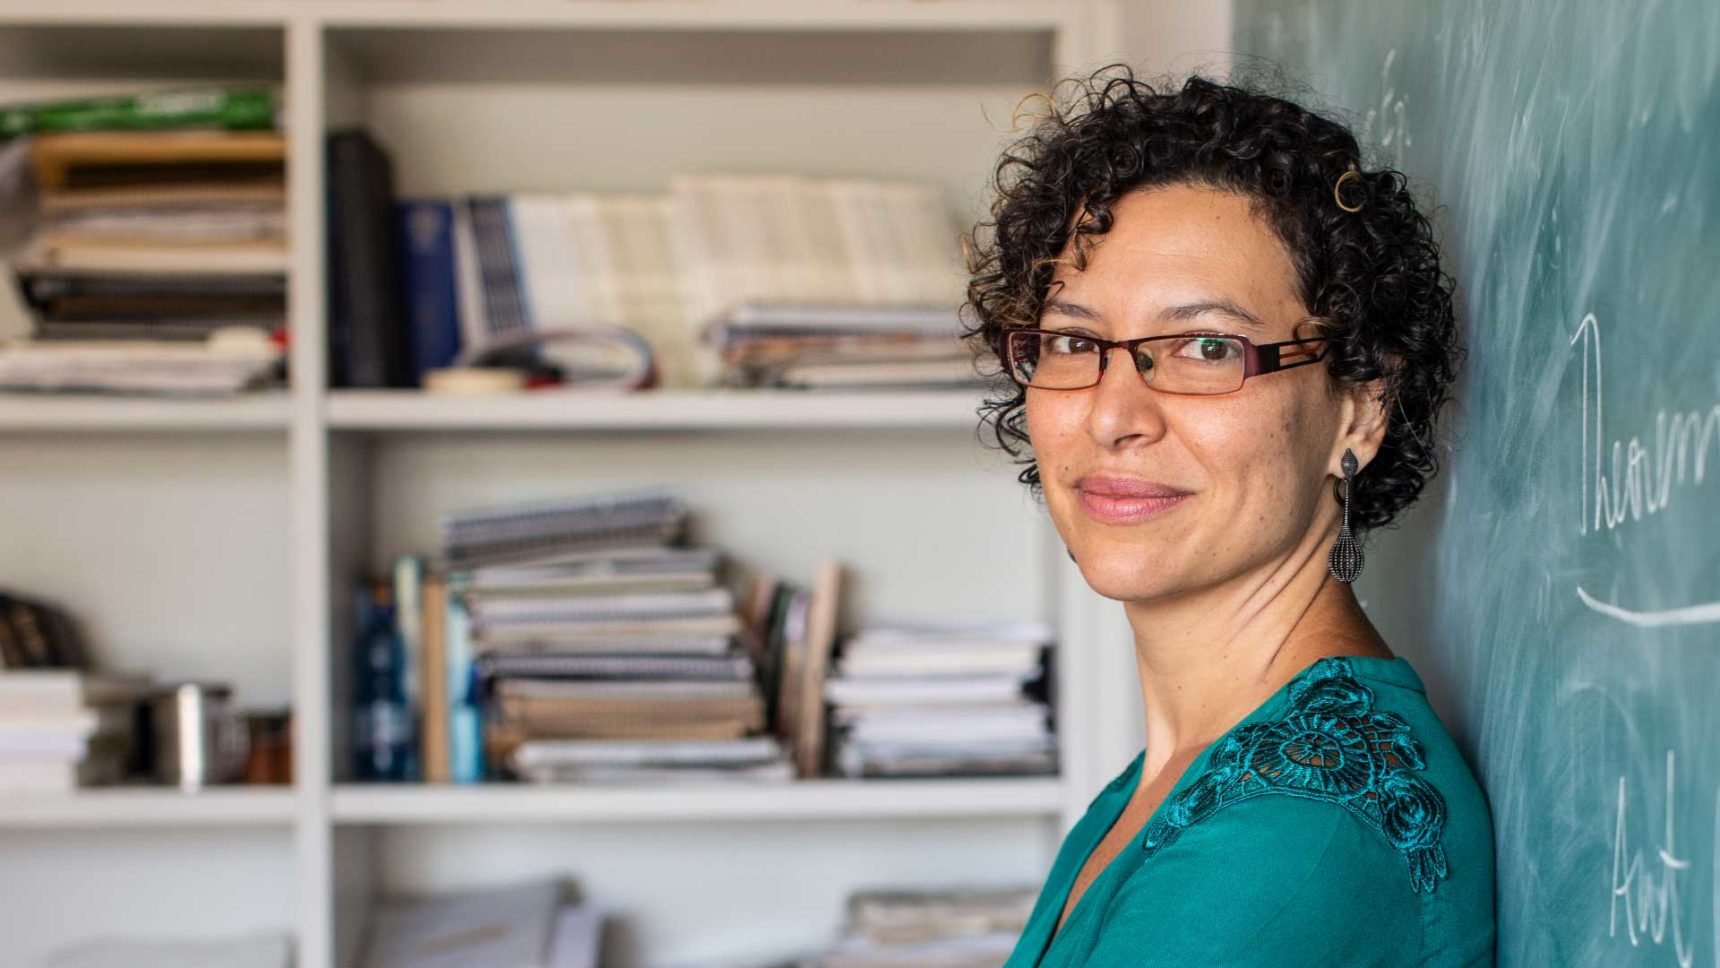 Carolina Araujo describes the effort to build a network of women mathematicians in Brazil.